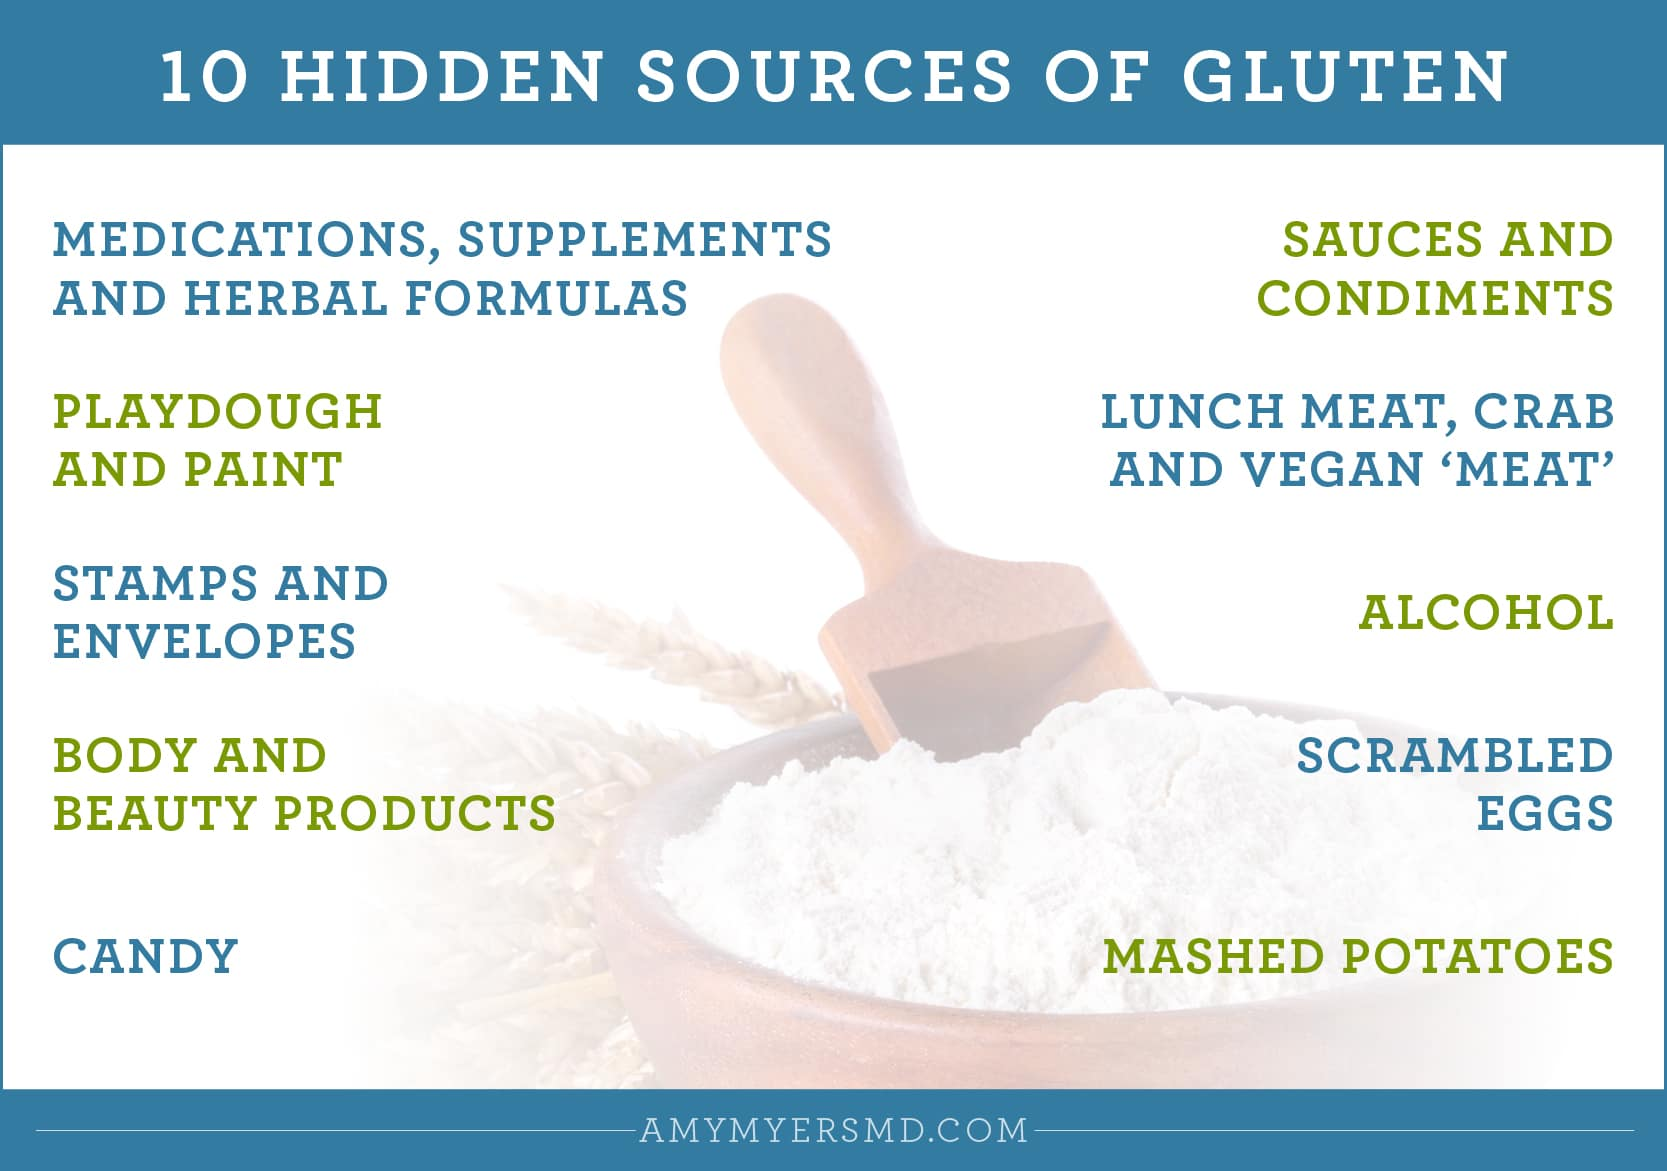 10 Hidden Sources of Gluten - Infographic - Amy Myers MD